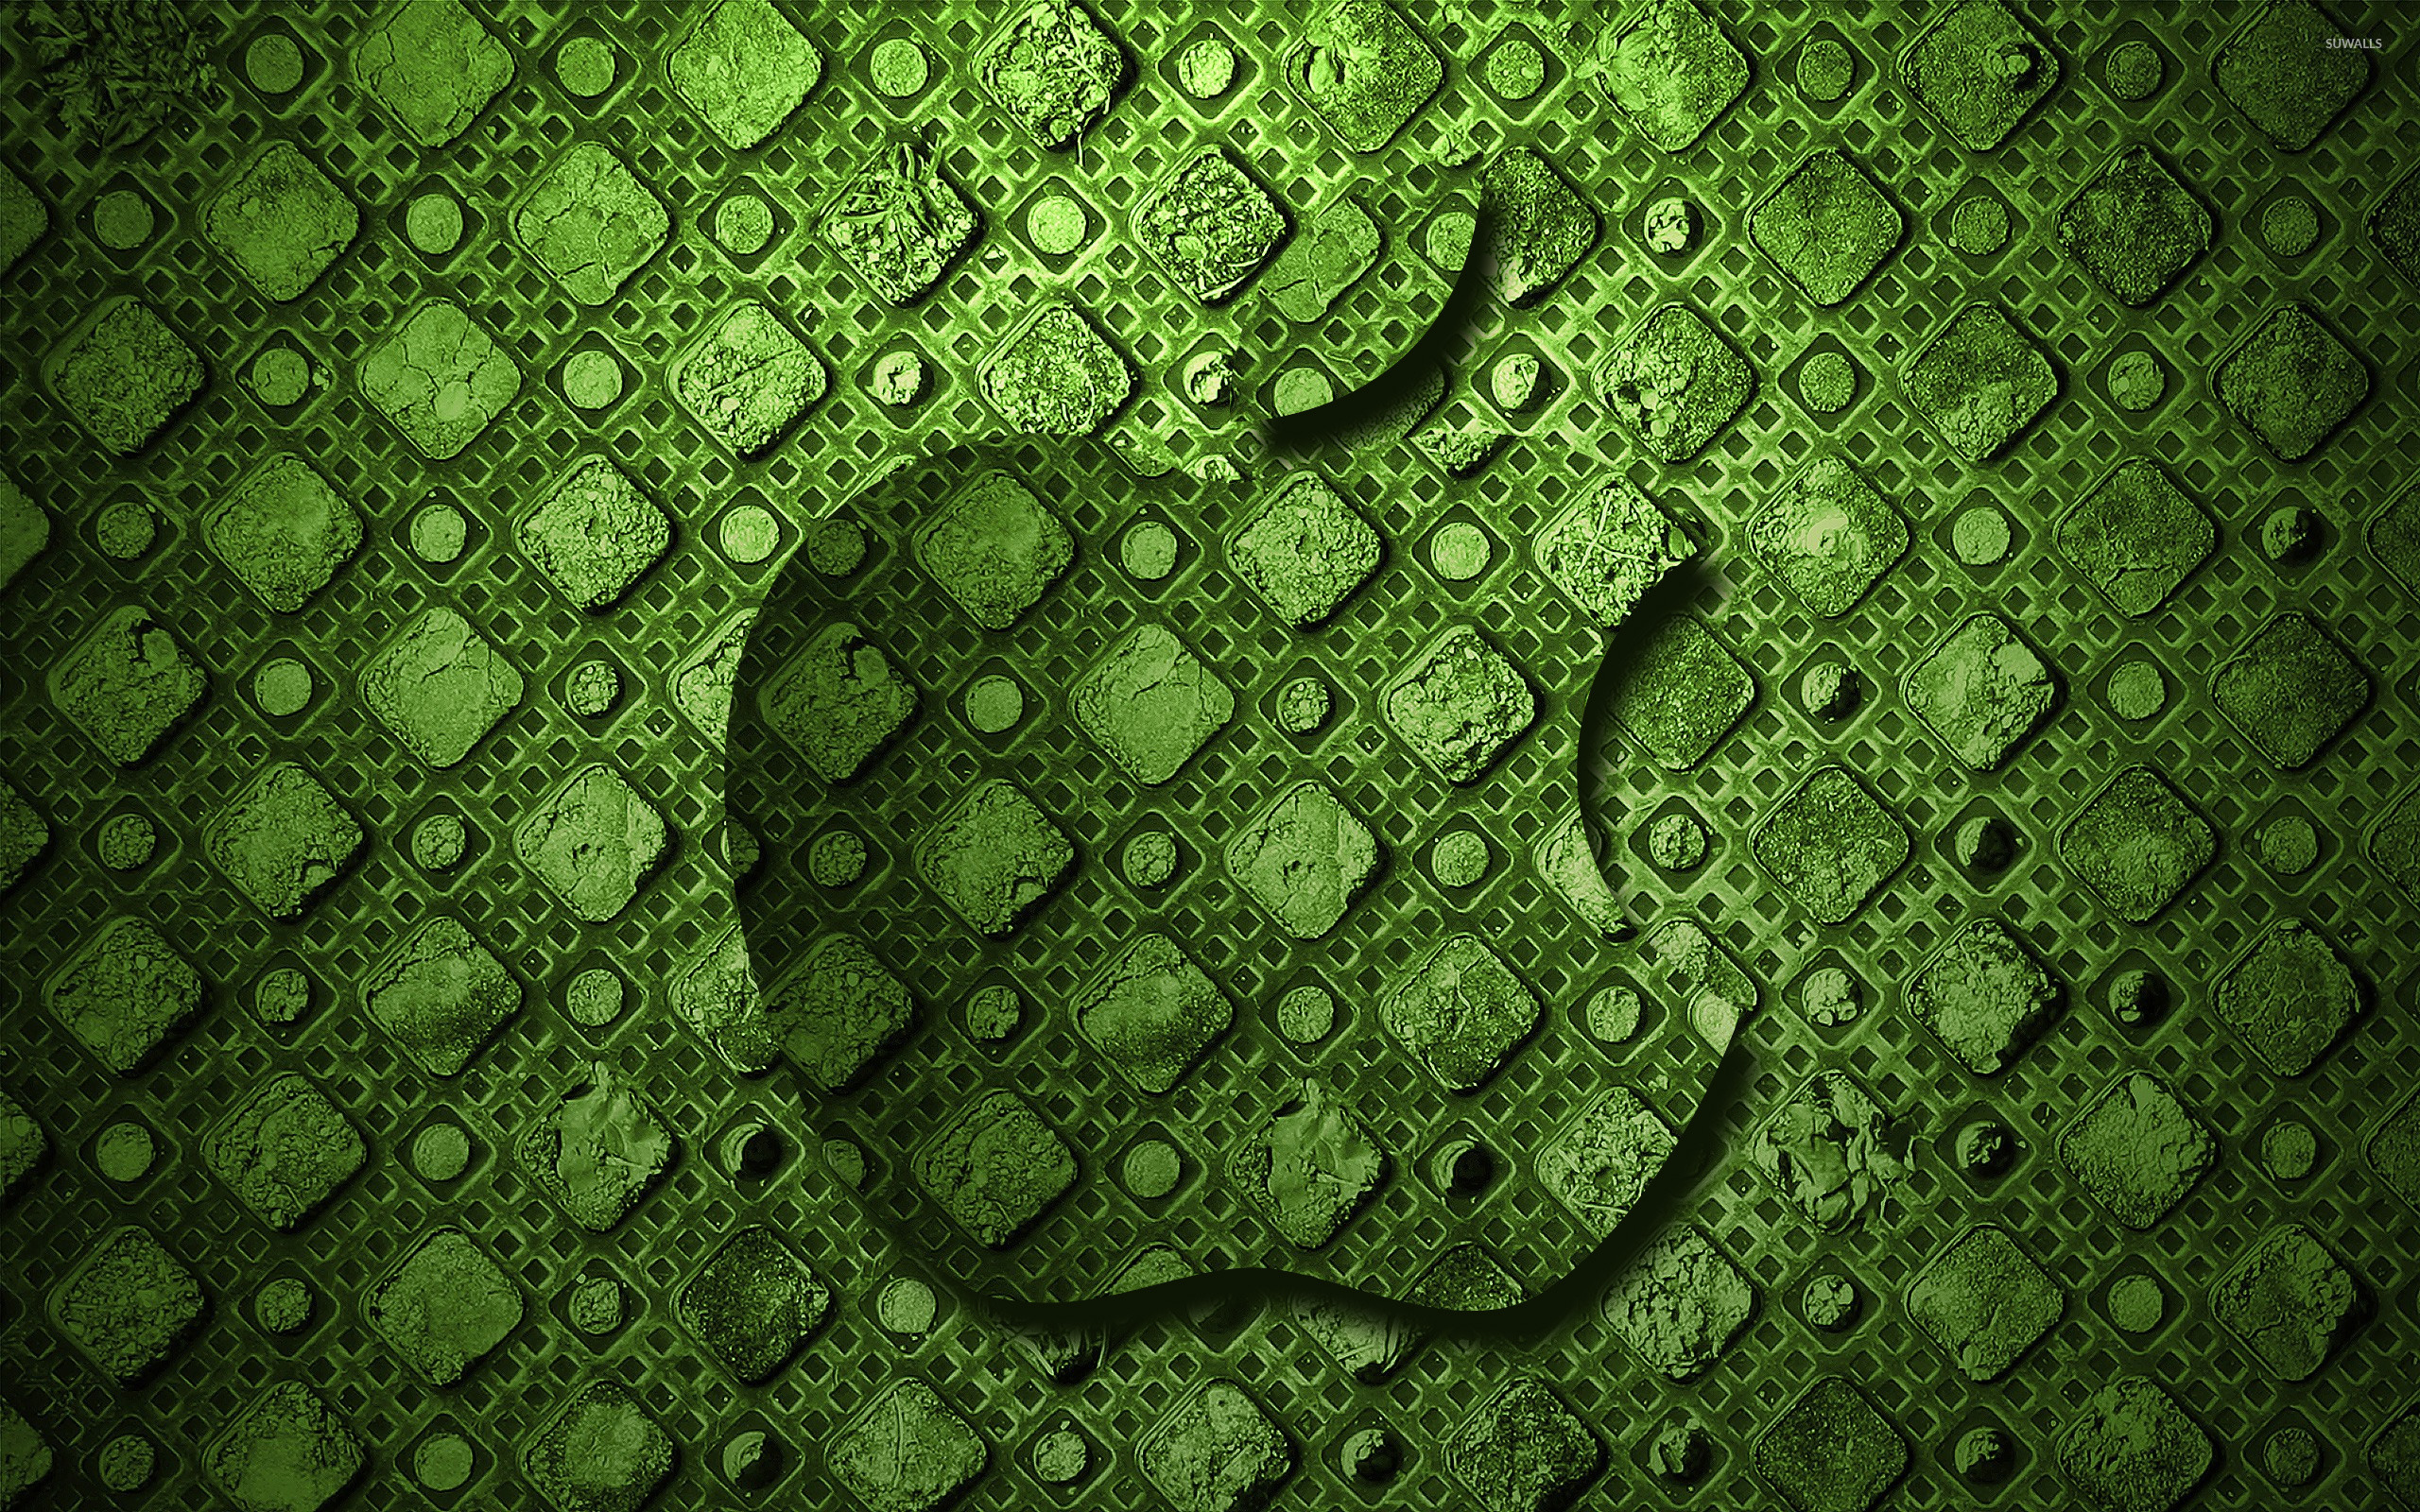 Green Apple Wallpapers for a Cool Summer Multy Shades